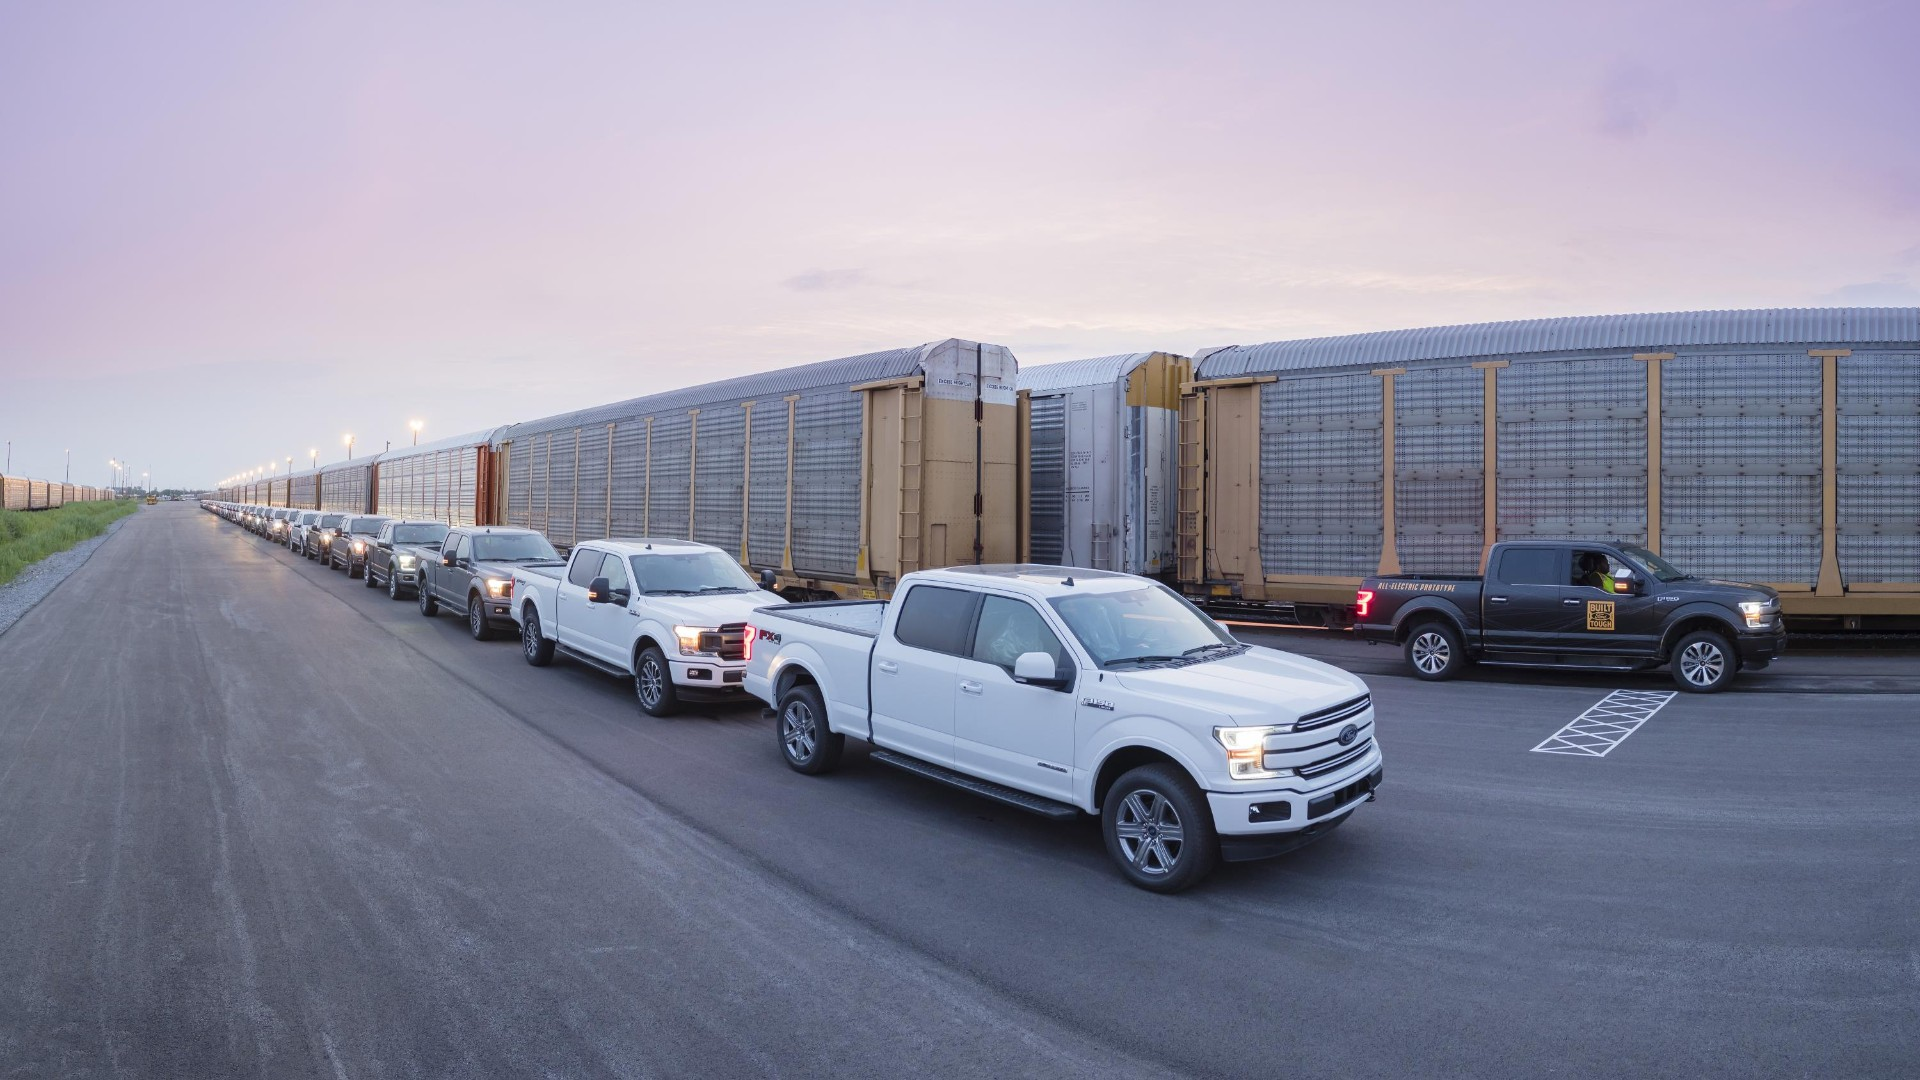 Battery-powered Ford F-150 towing 450 metric tons' worth of goods